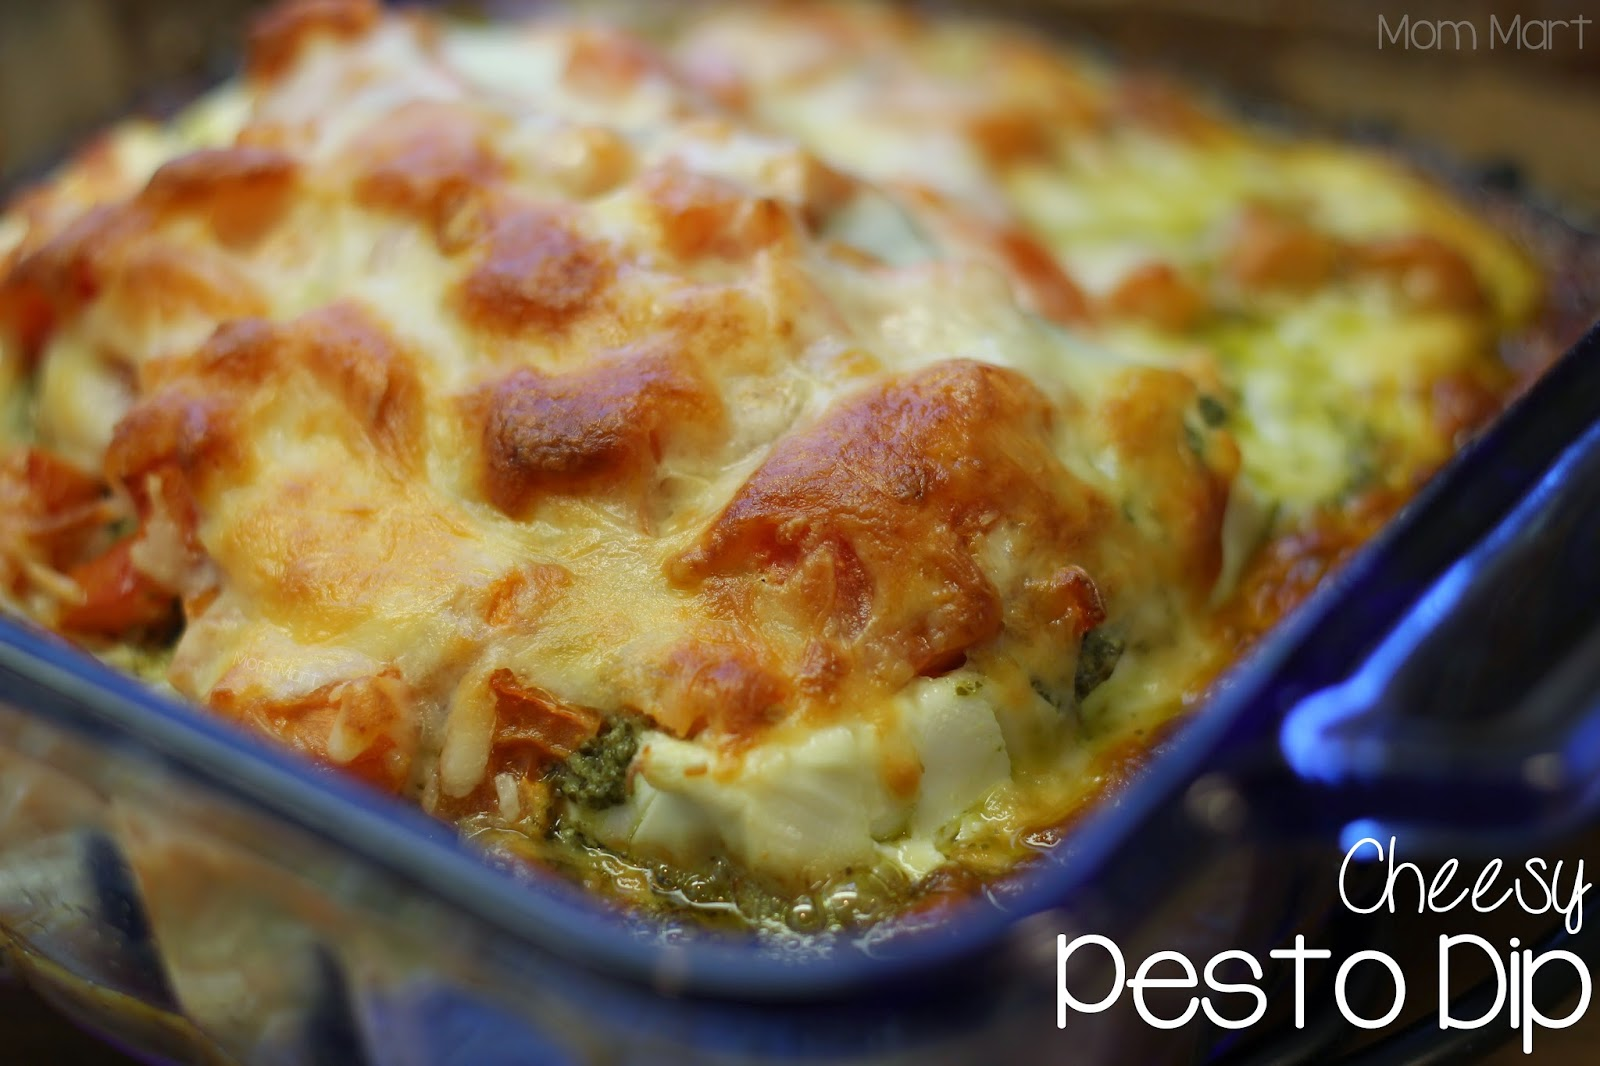 Cheesy Pesto Dip Recipe #Appetizer #Recipe #YUM #Foodie